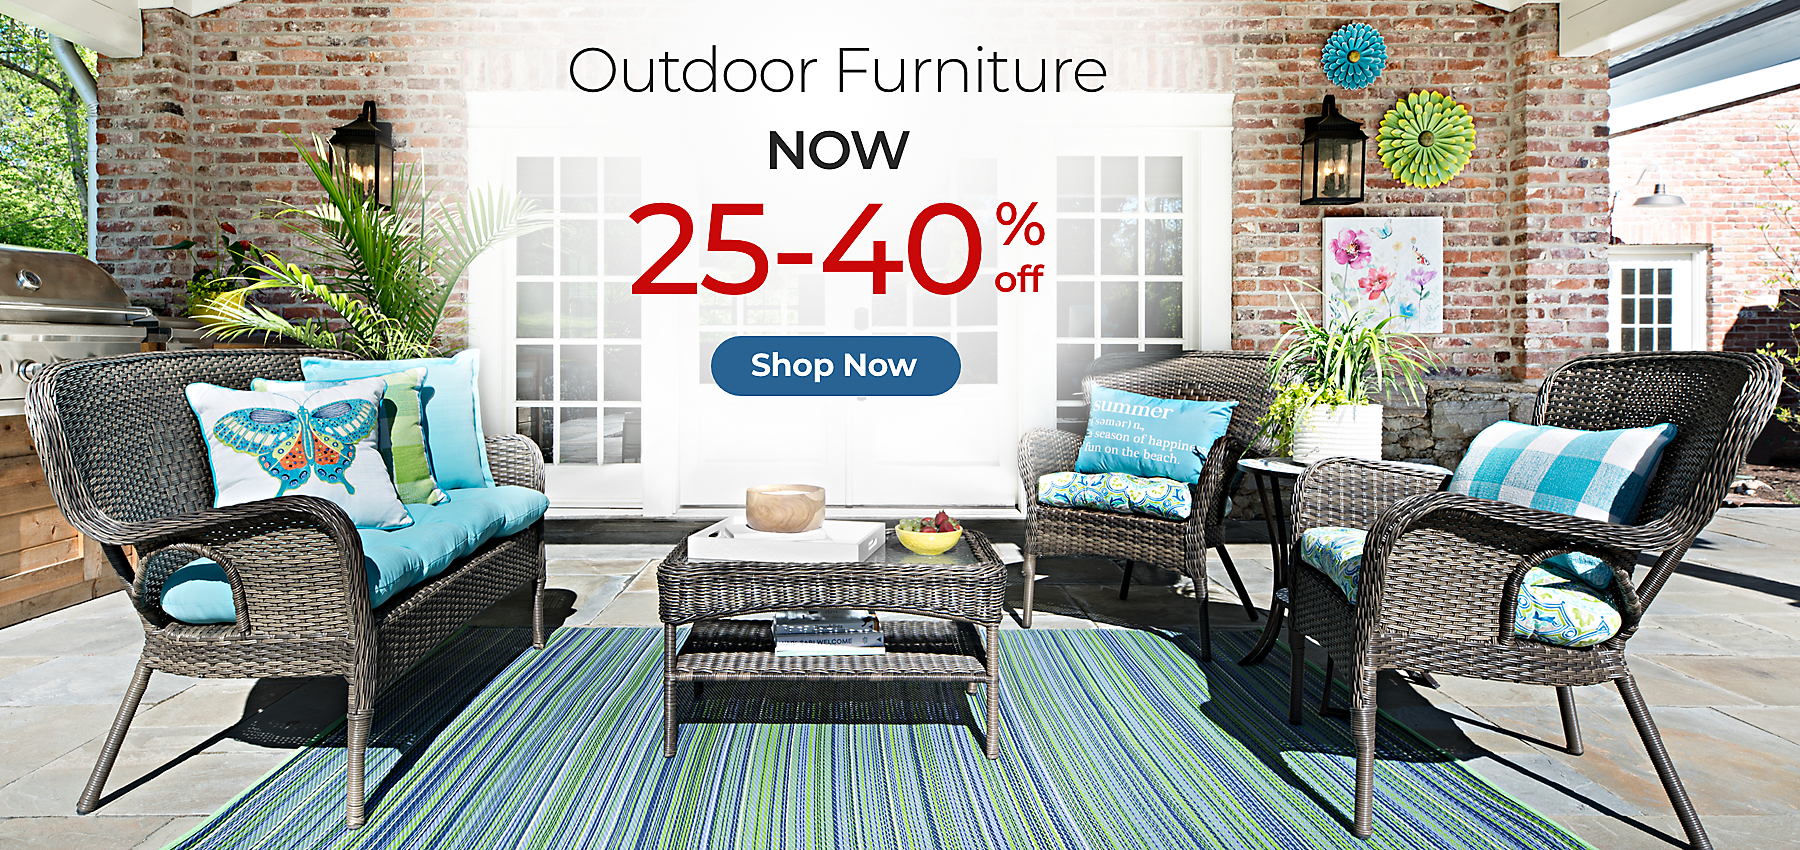 Outdoor Furniture Now 25%-40% off Shop Now